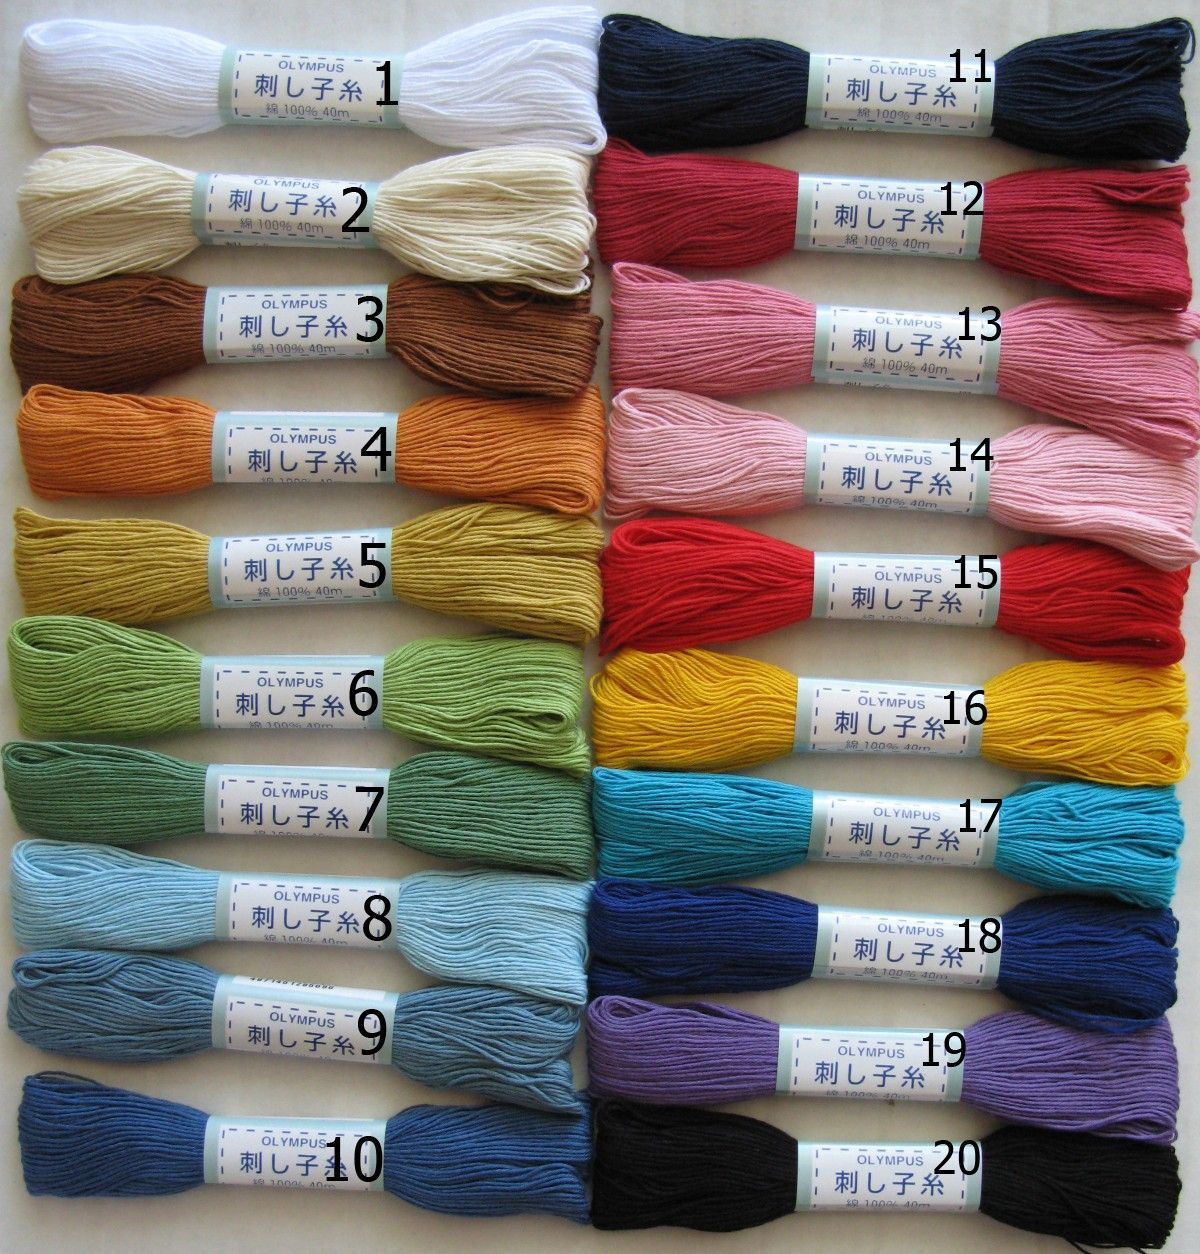 SASHIKO THREADS Japanese Hand Embroidery Threads by PinkNelie